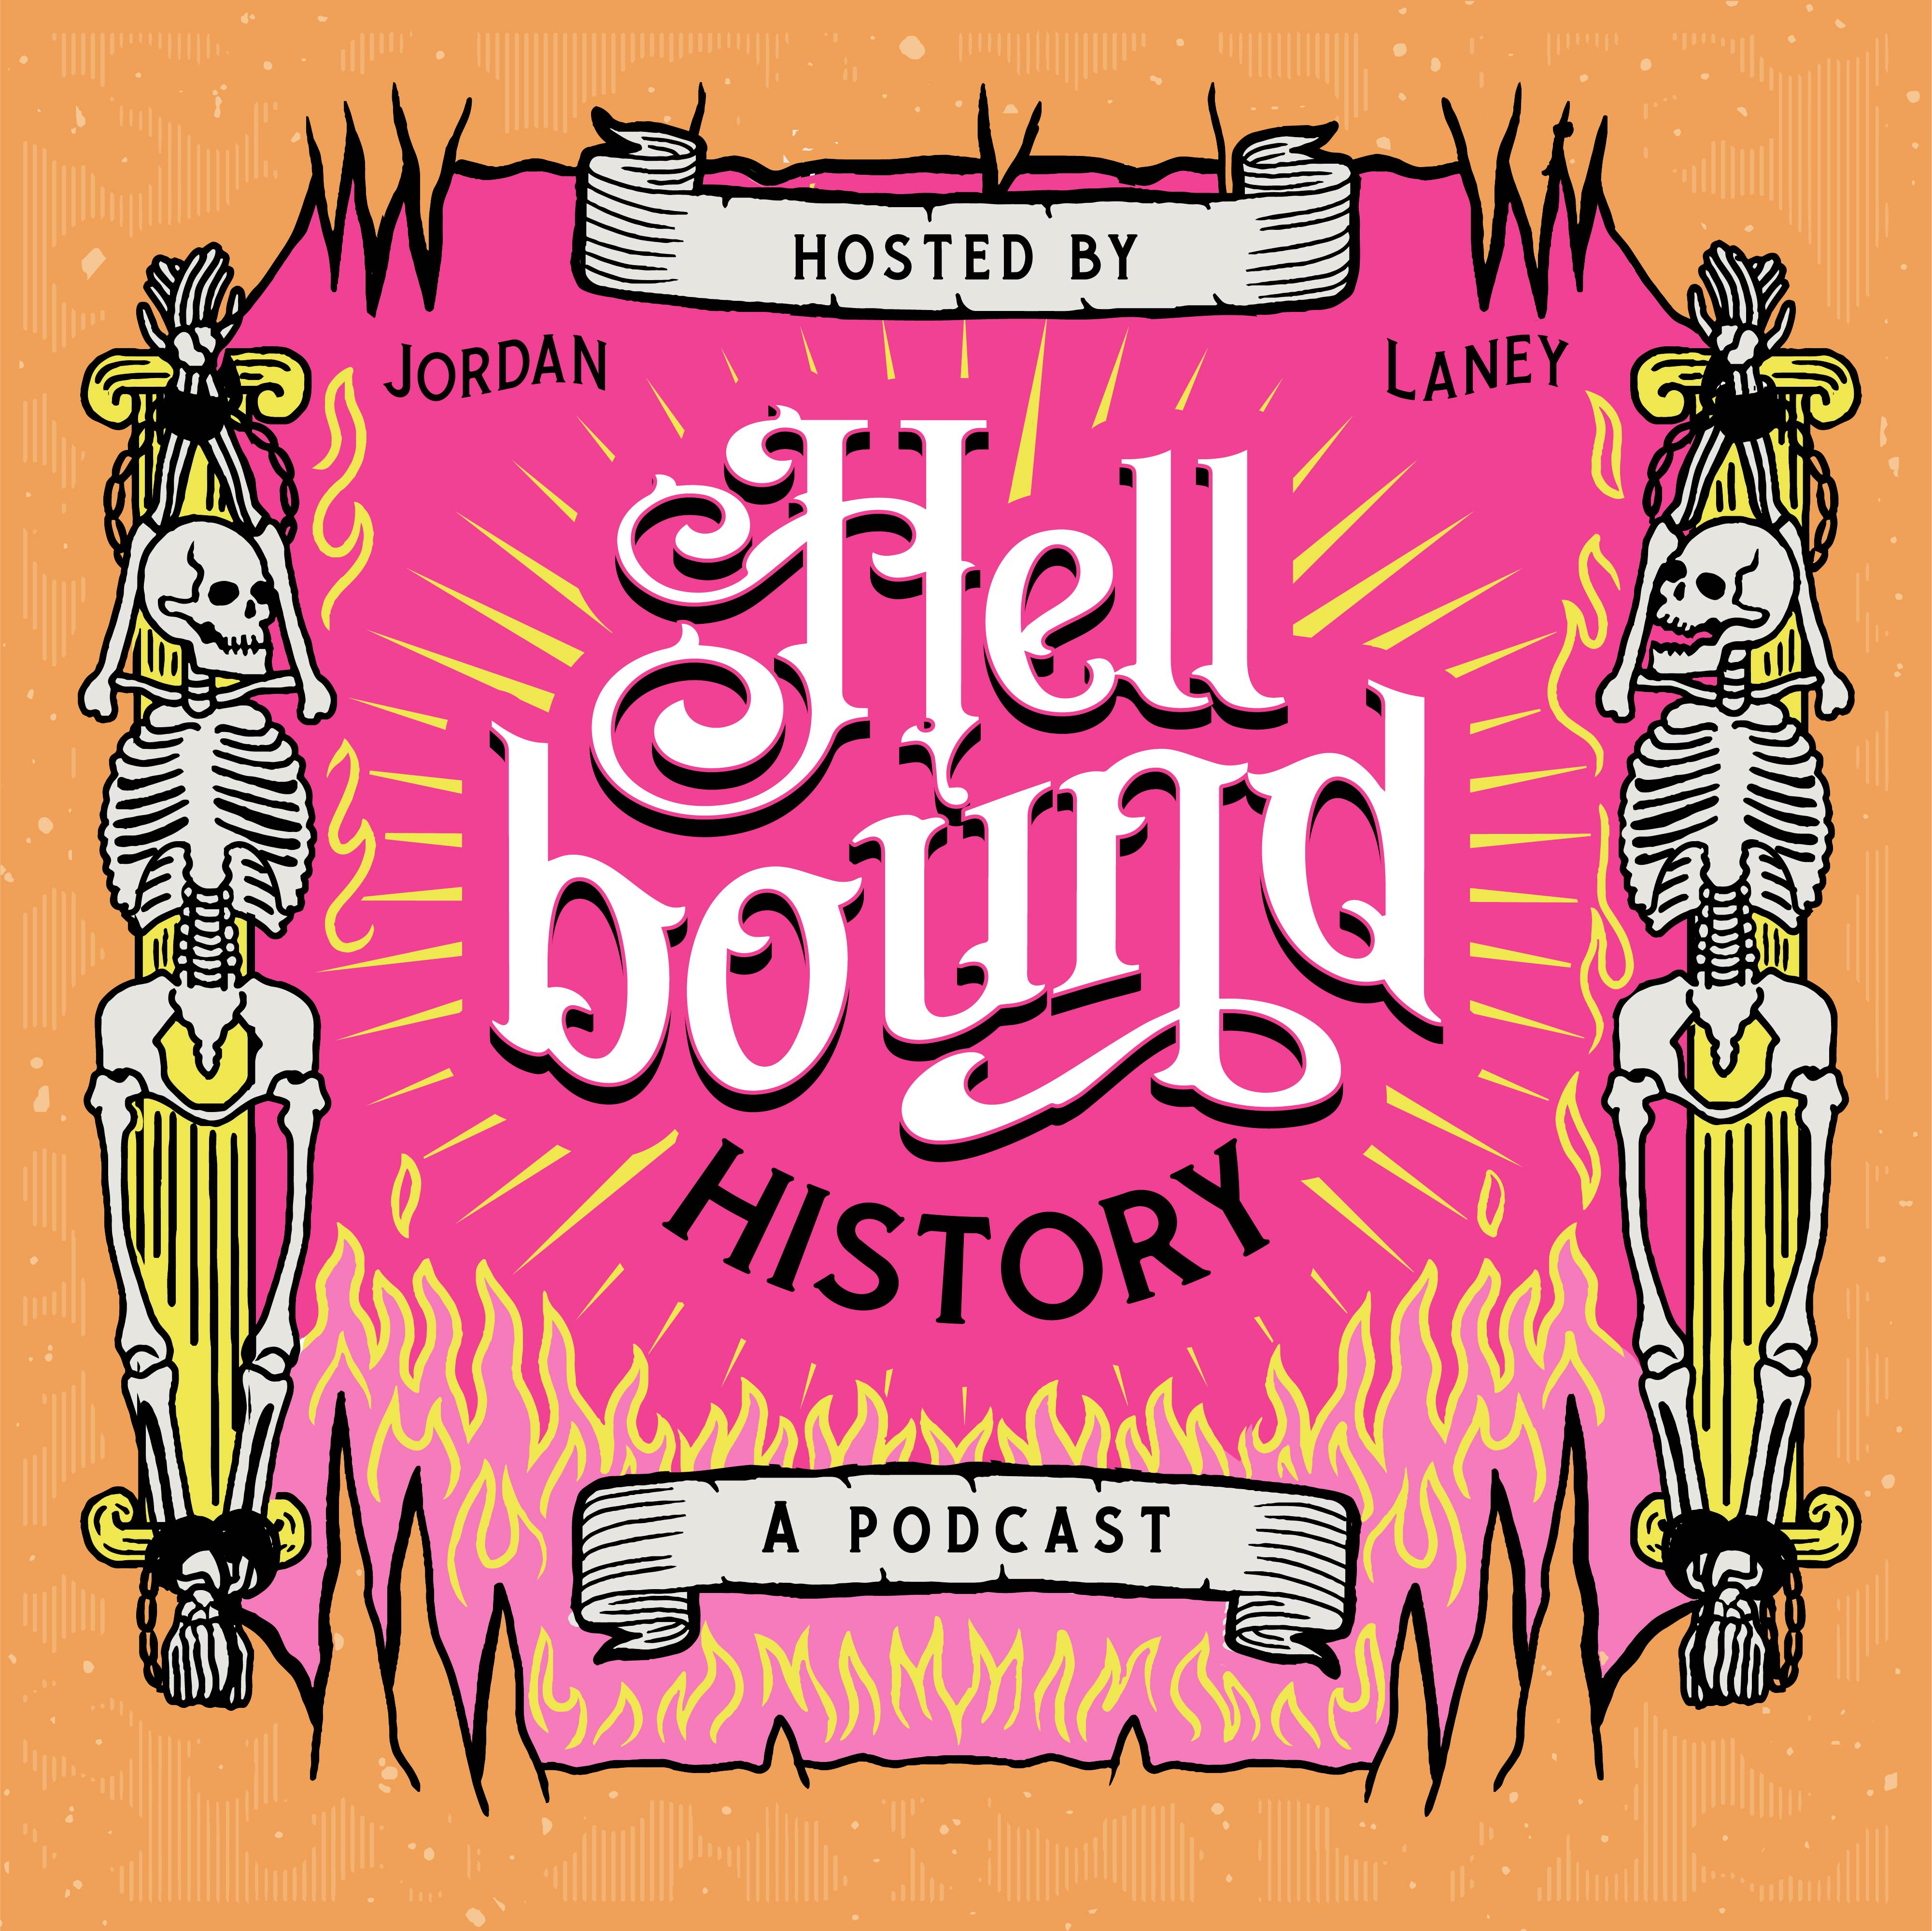 History podcast seeking dark and twisted, vintage inspired cover art.